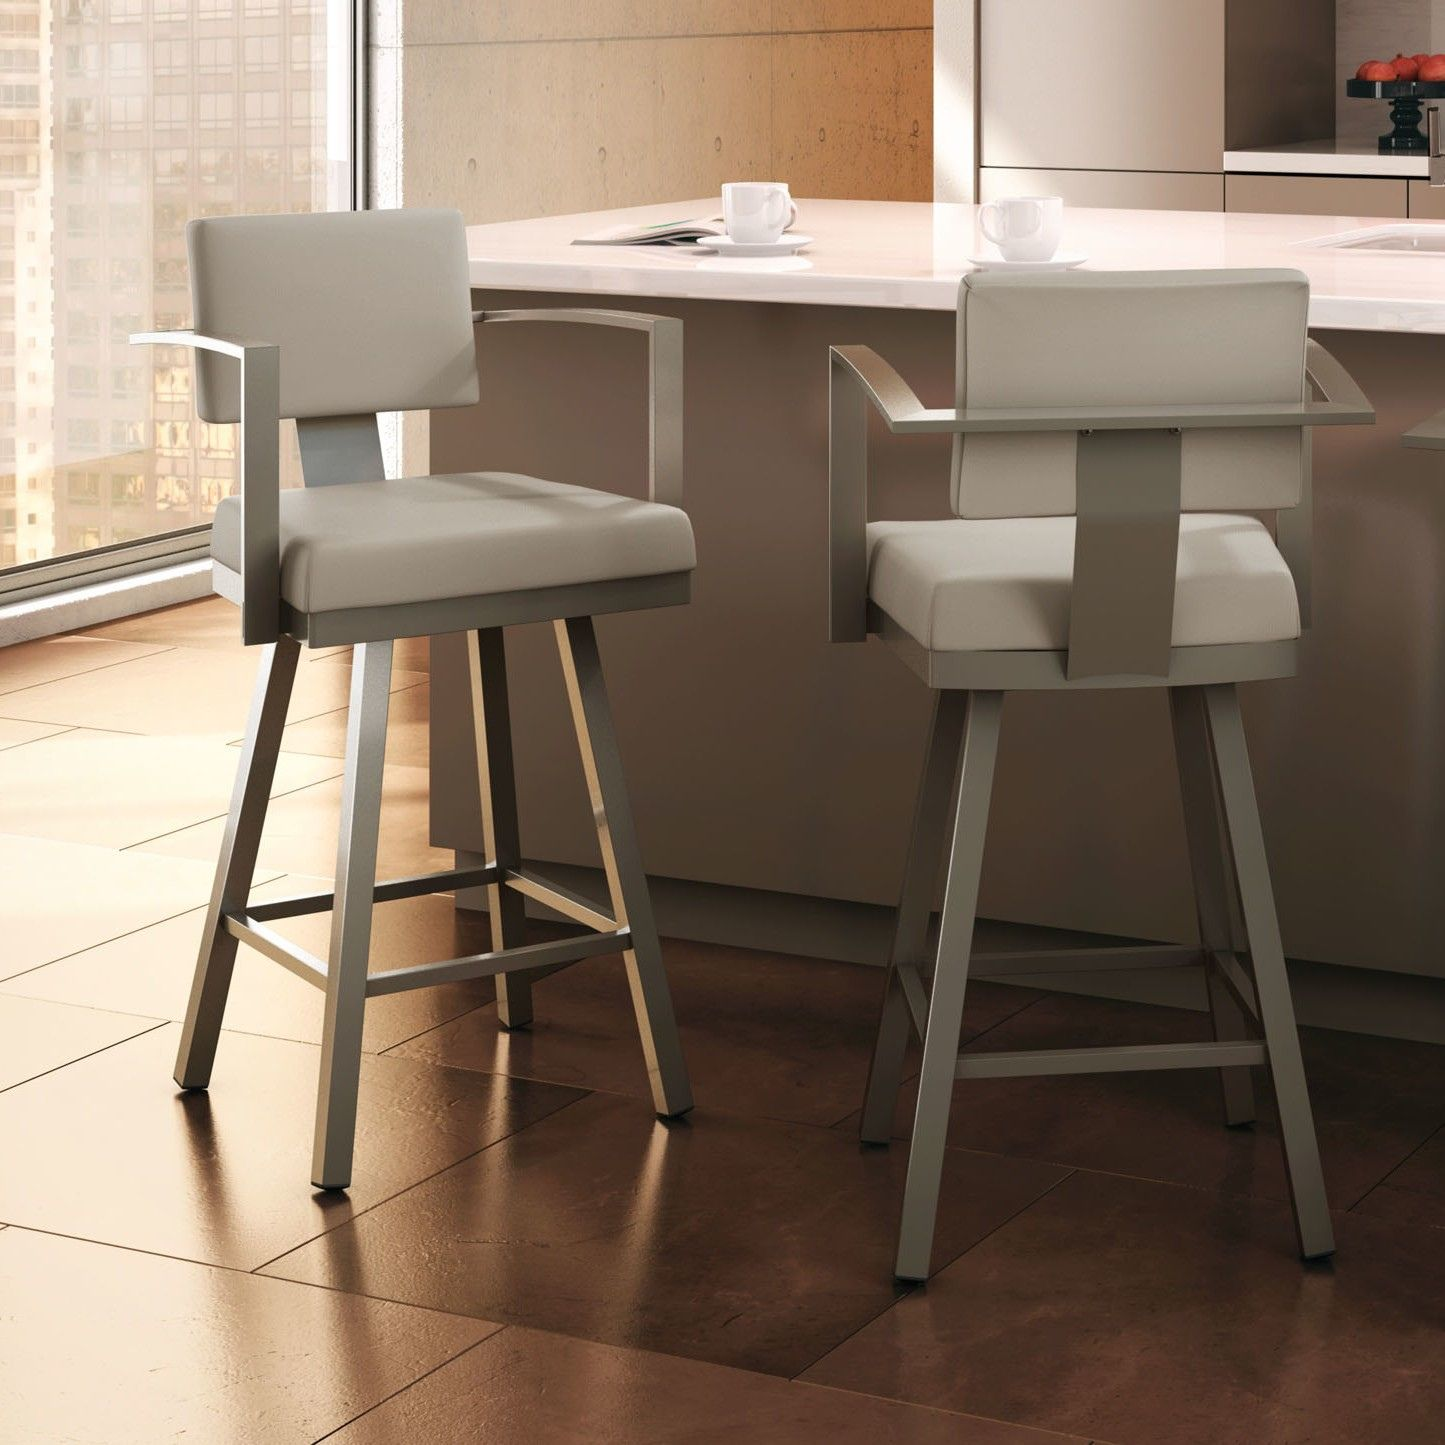 55 counter height bar stools with arms modern design furniture